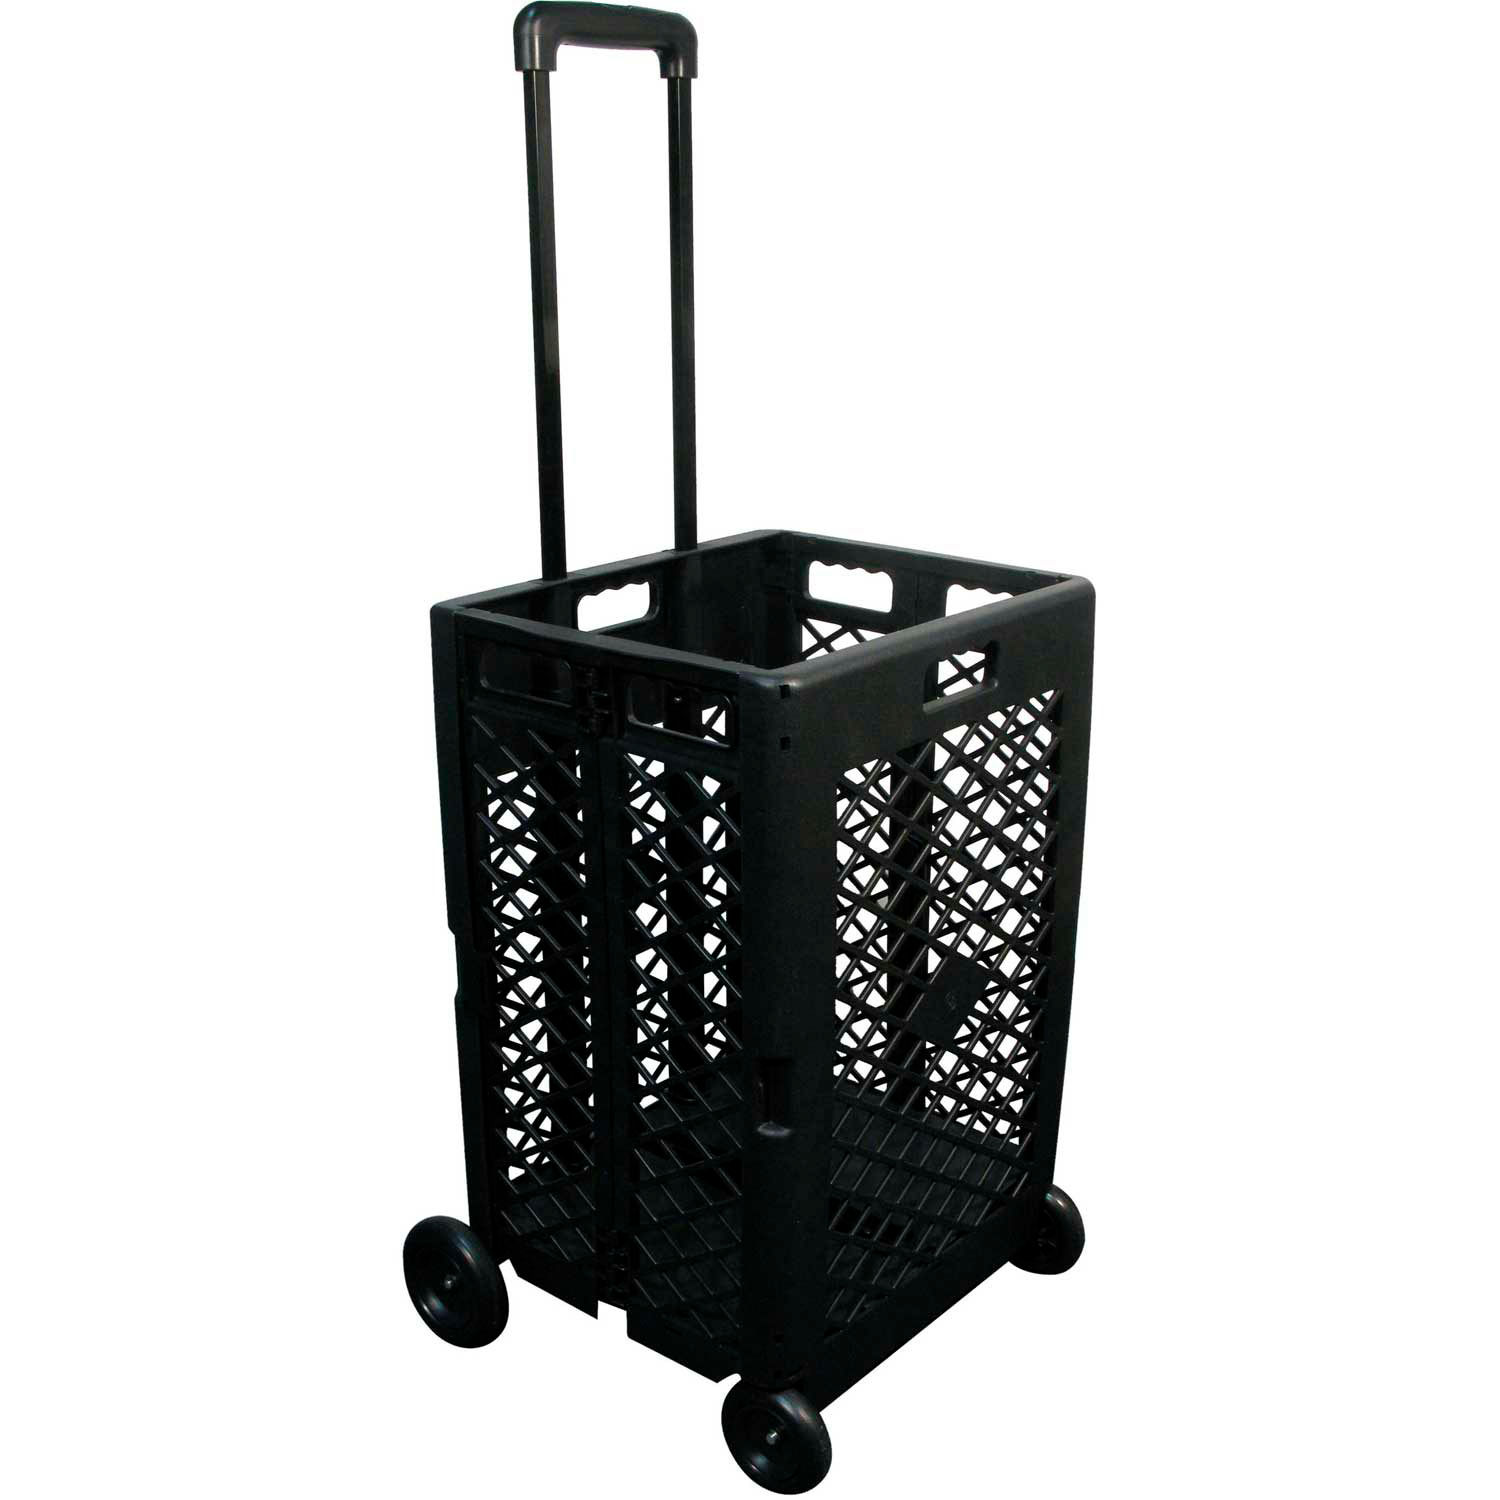 Olympia Tools 85-601 Pack-N-Roll Express Telescoping Hand Truck by Olympia Tools